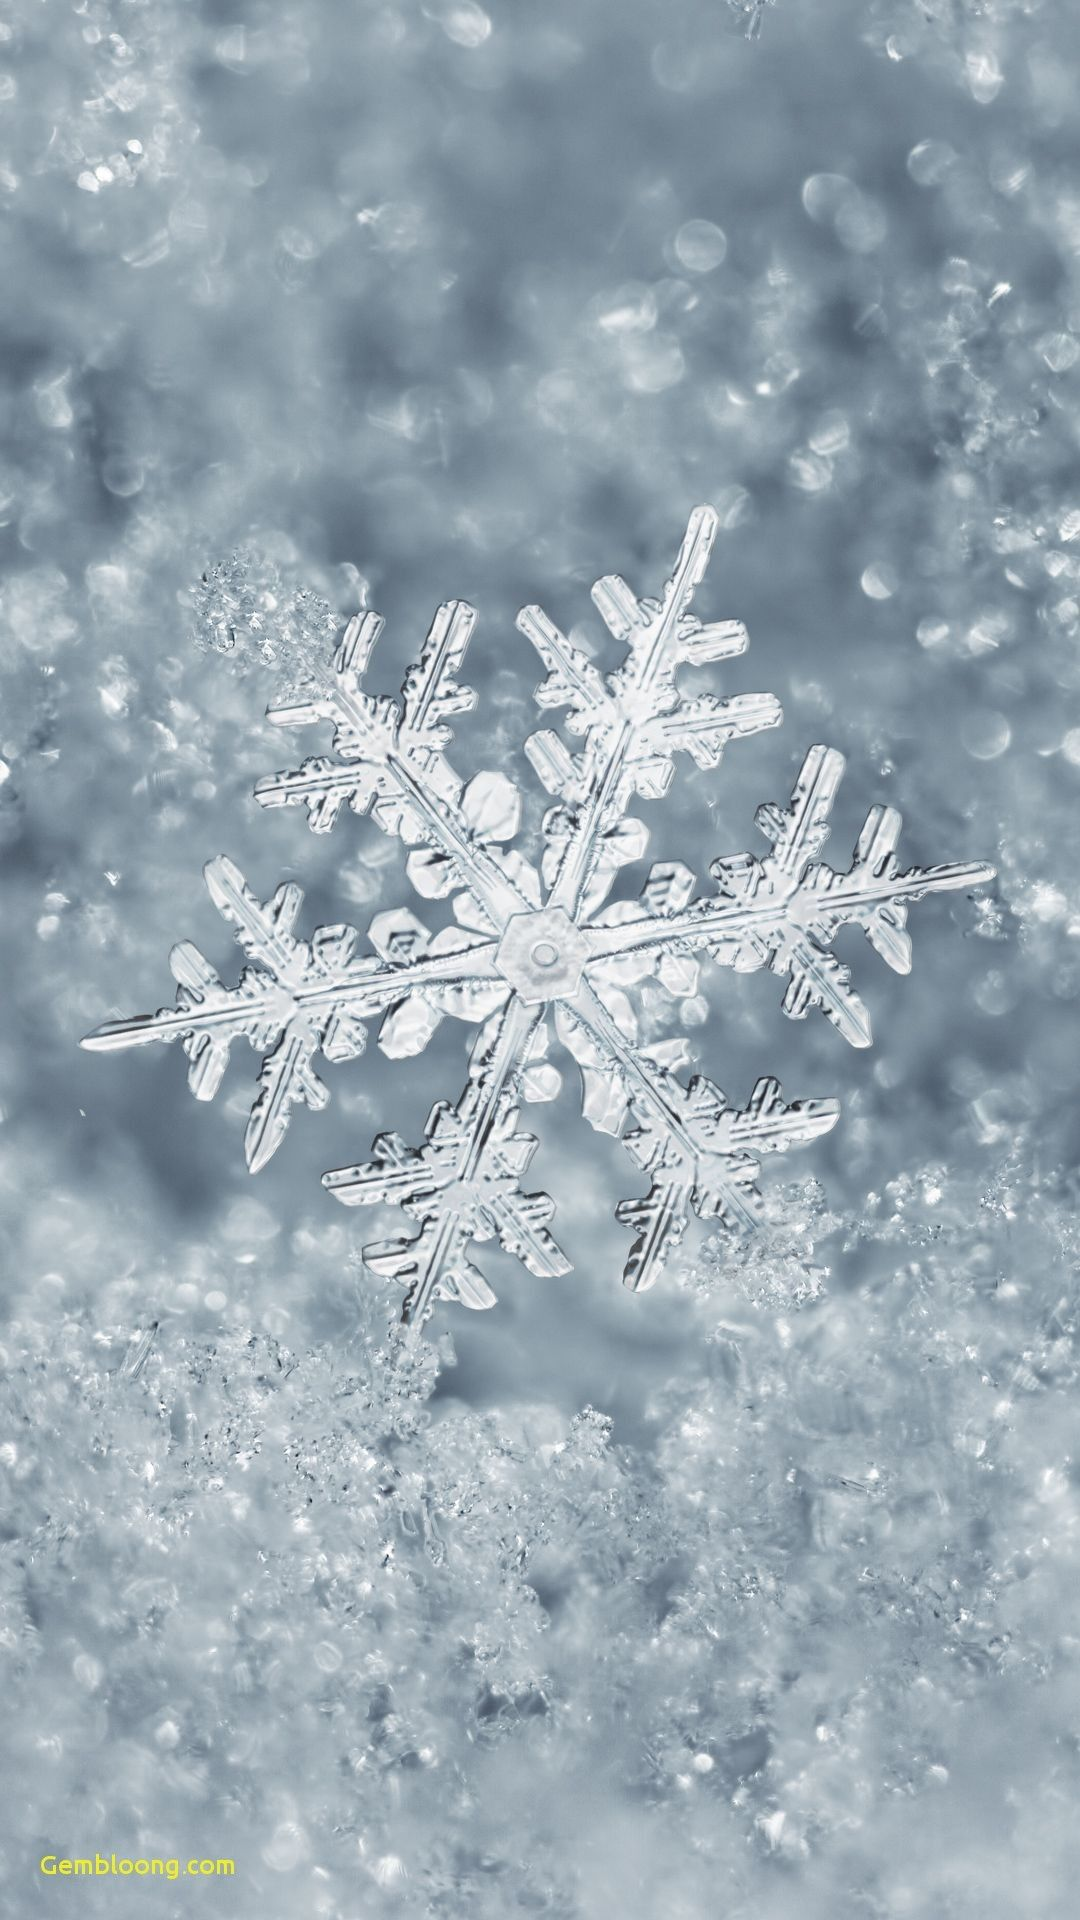 Wallpapers for iPhone Christmas Elegant Ice Snowflake